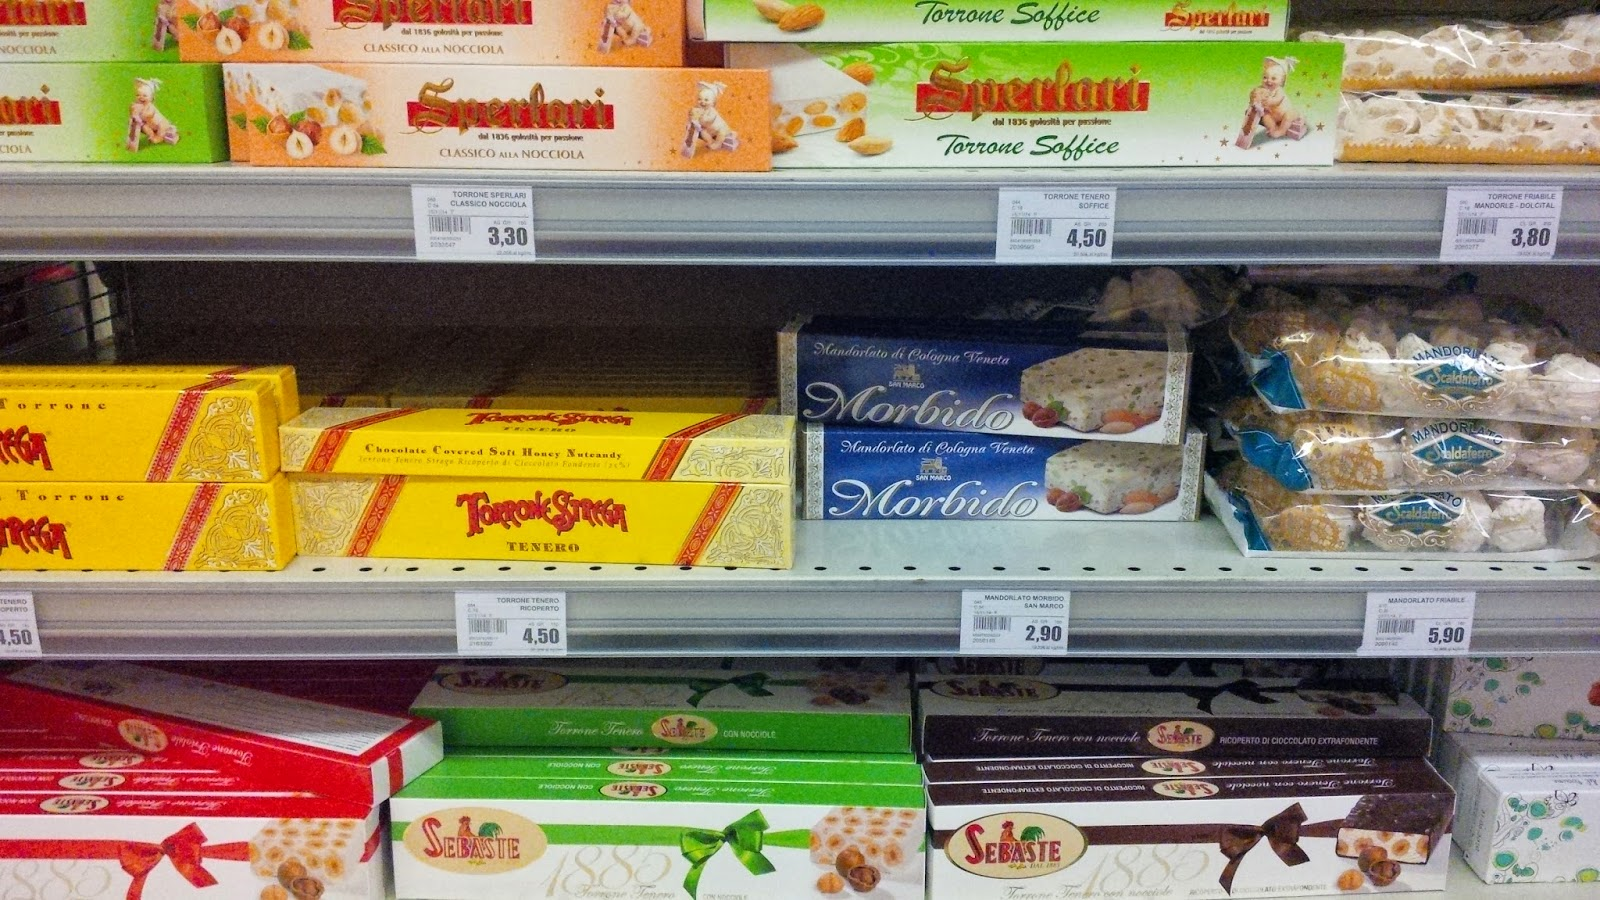 Shelves filled with nougat for Christmas